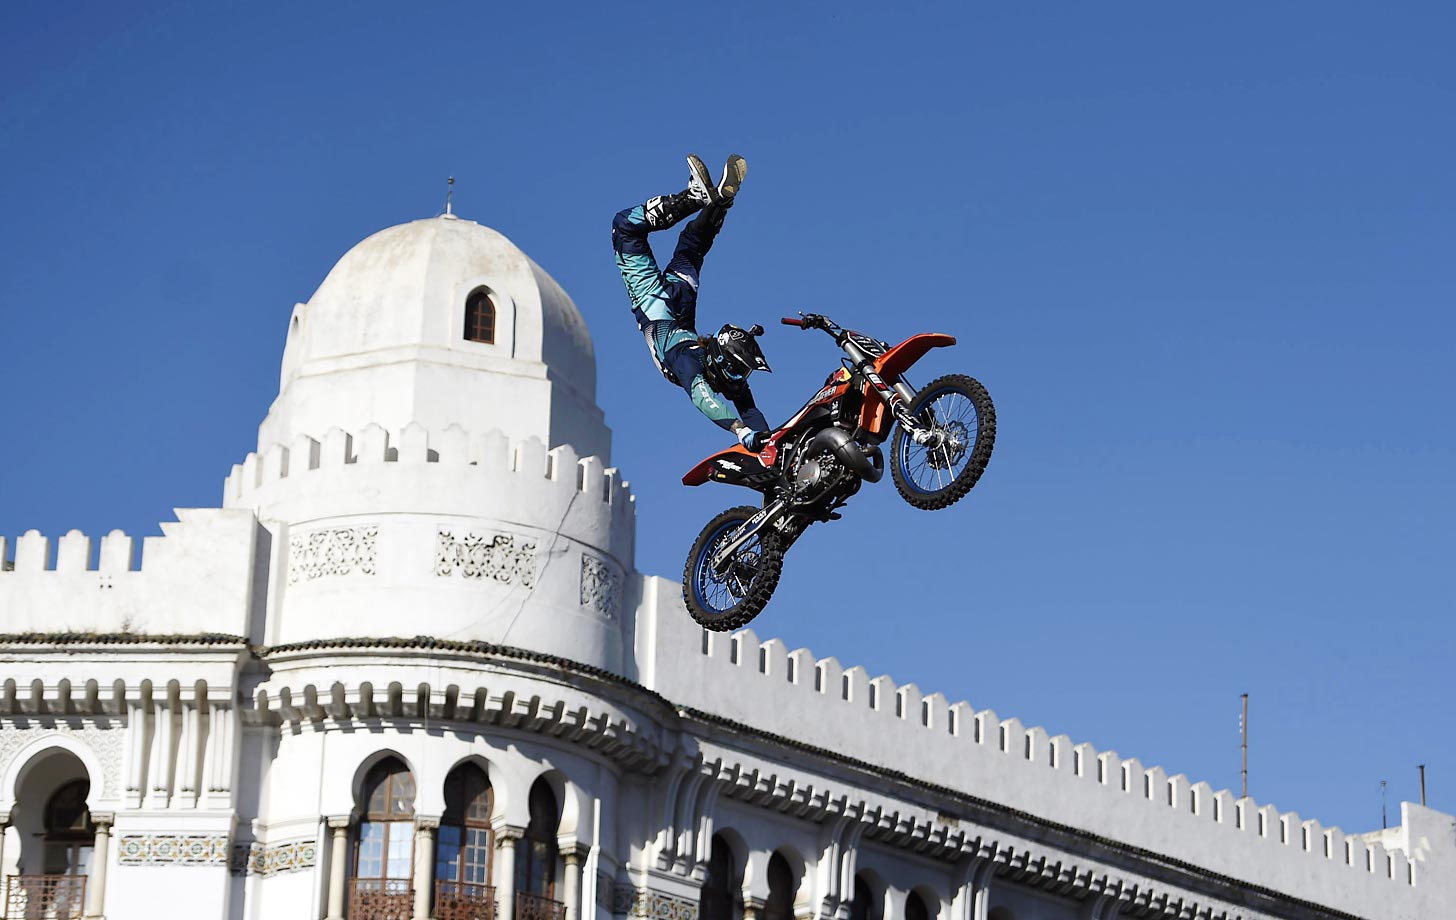 Giles De Jong performs a trick at the Algeria stage of the 2015 Red Bull X-Fighters World Tour.